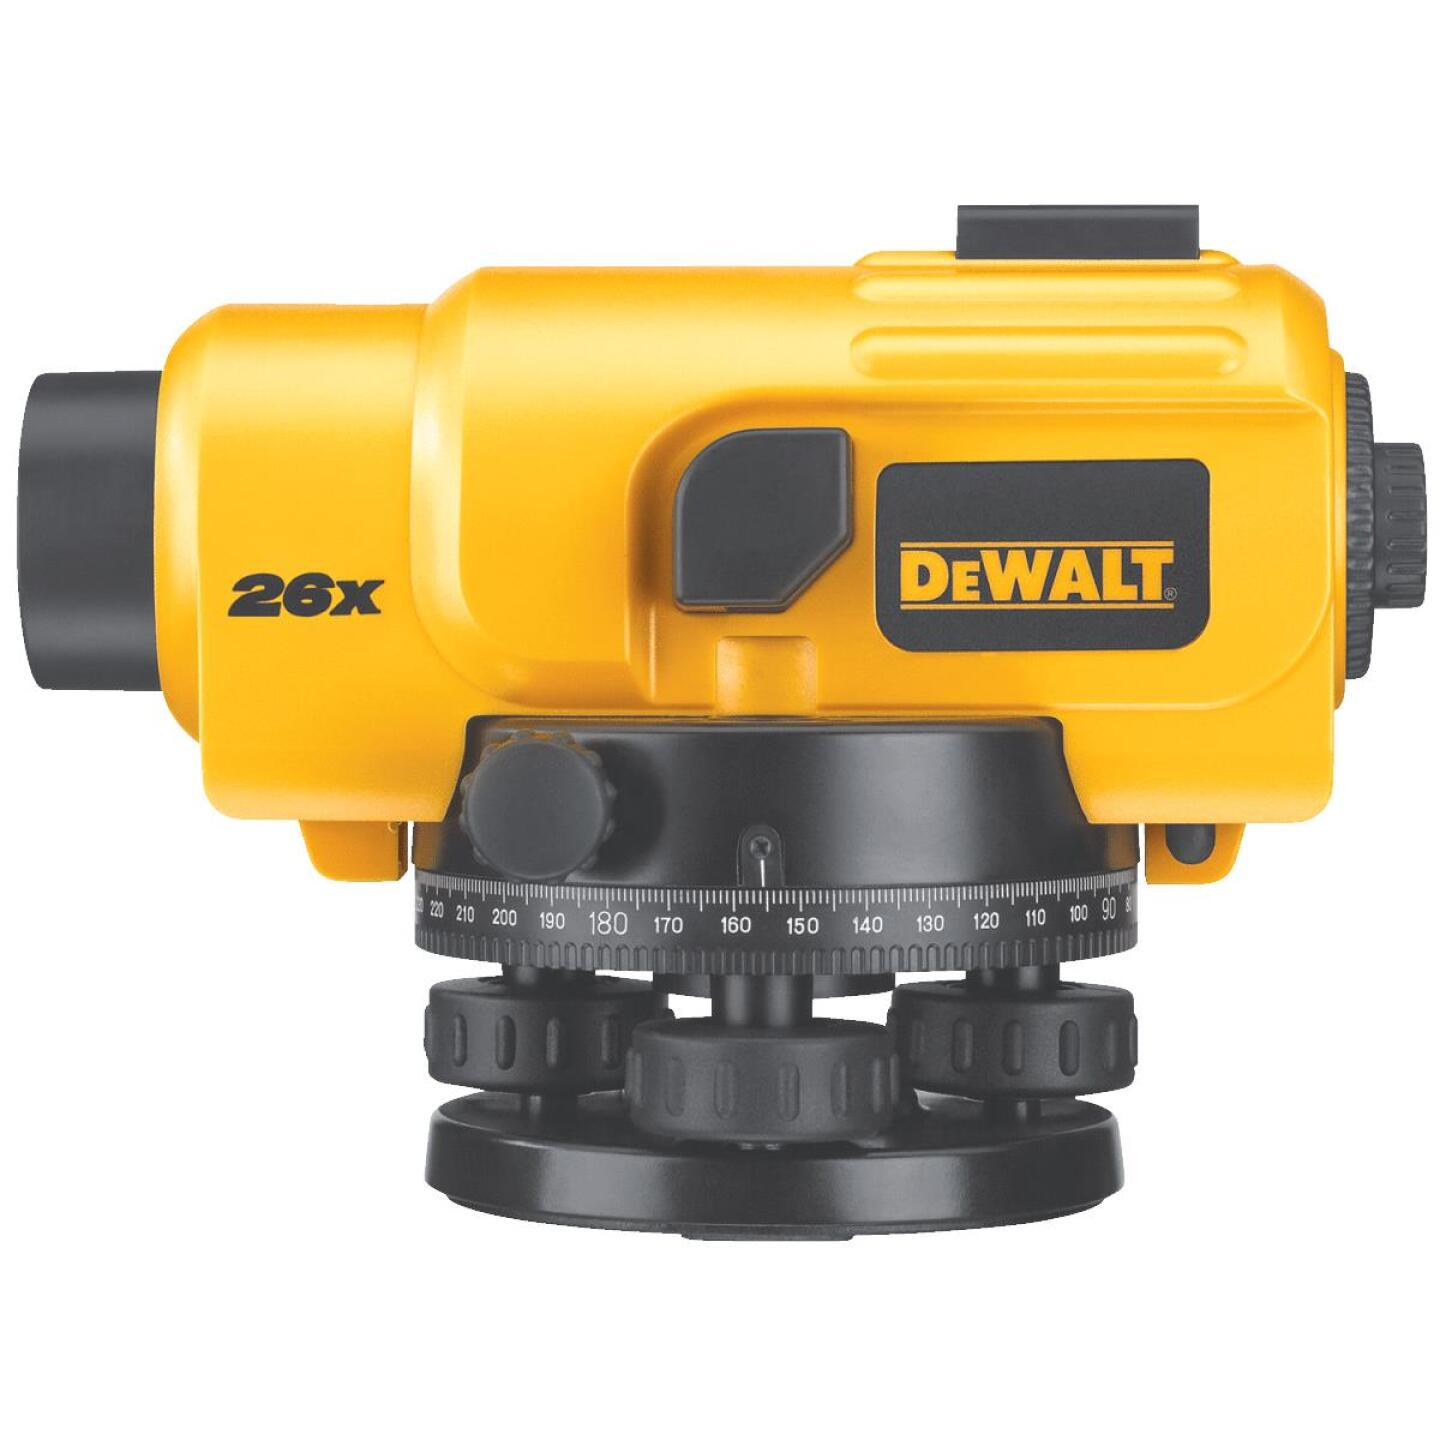 Dewalt 26x Magnifying Auto Sight Level Image 1